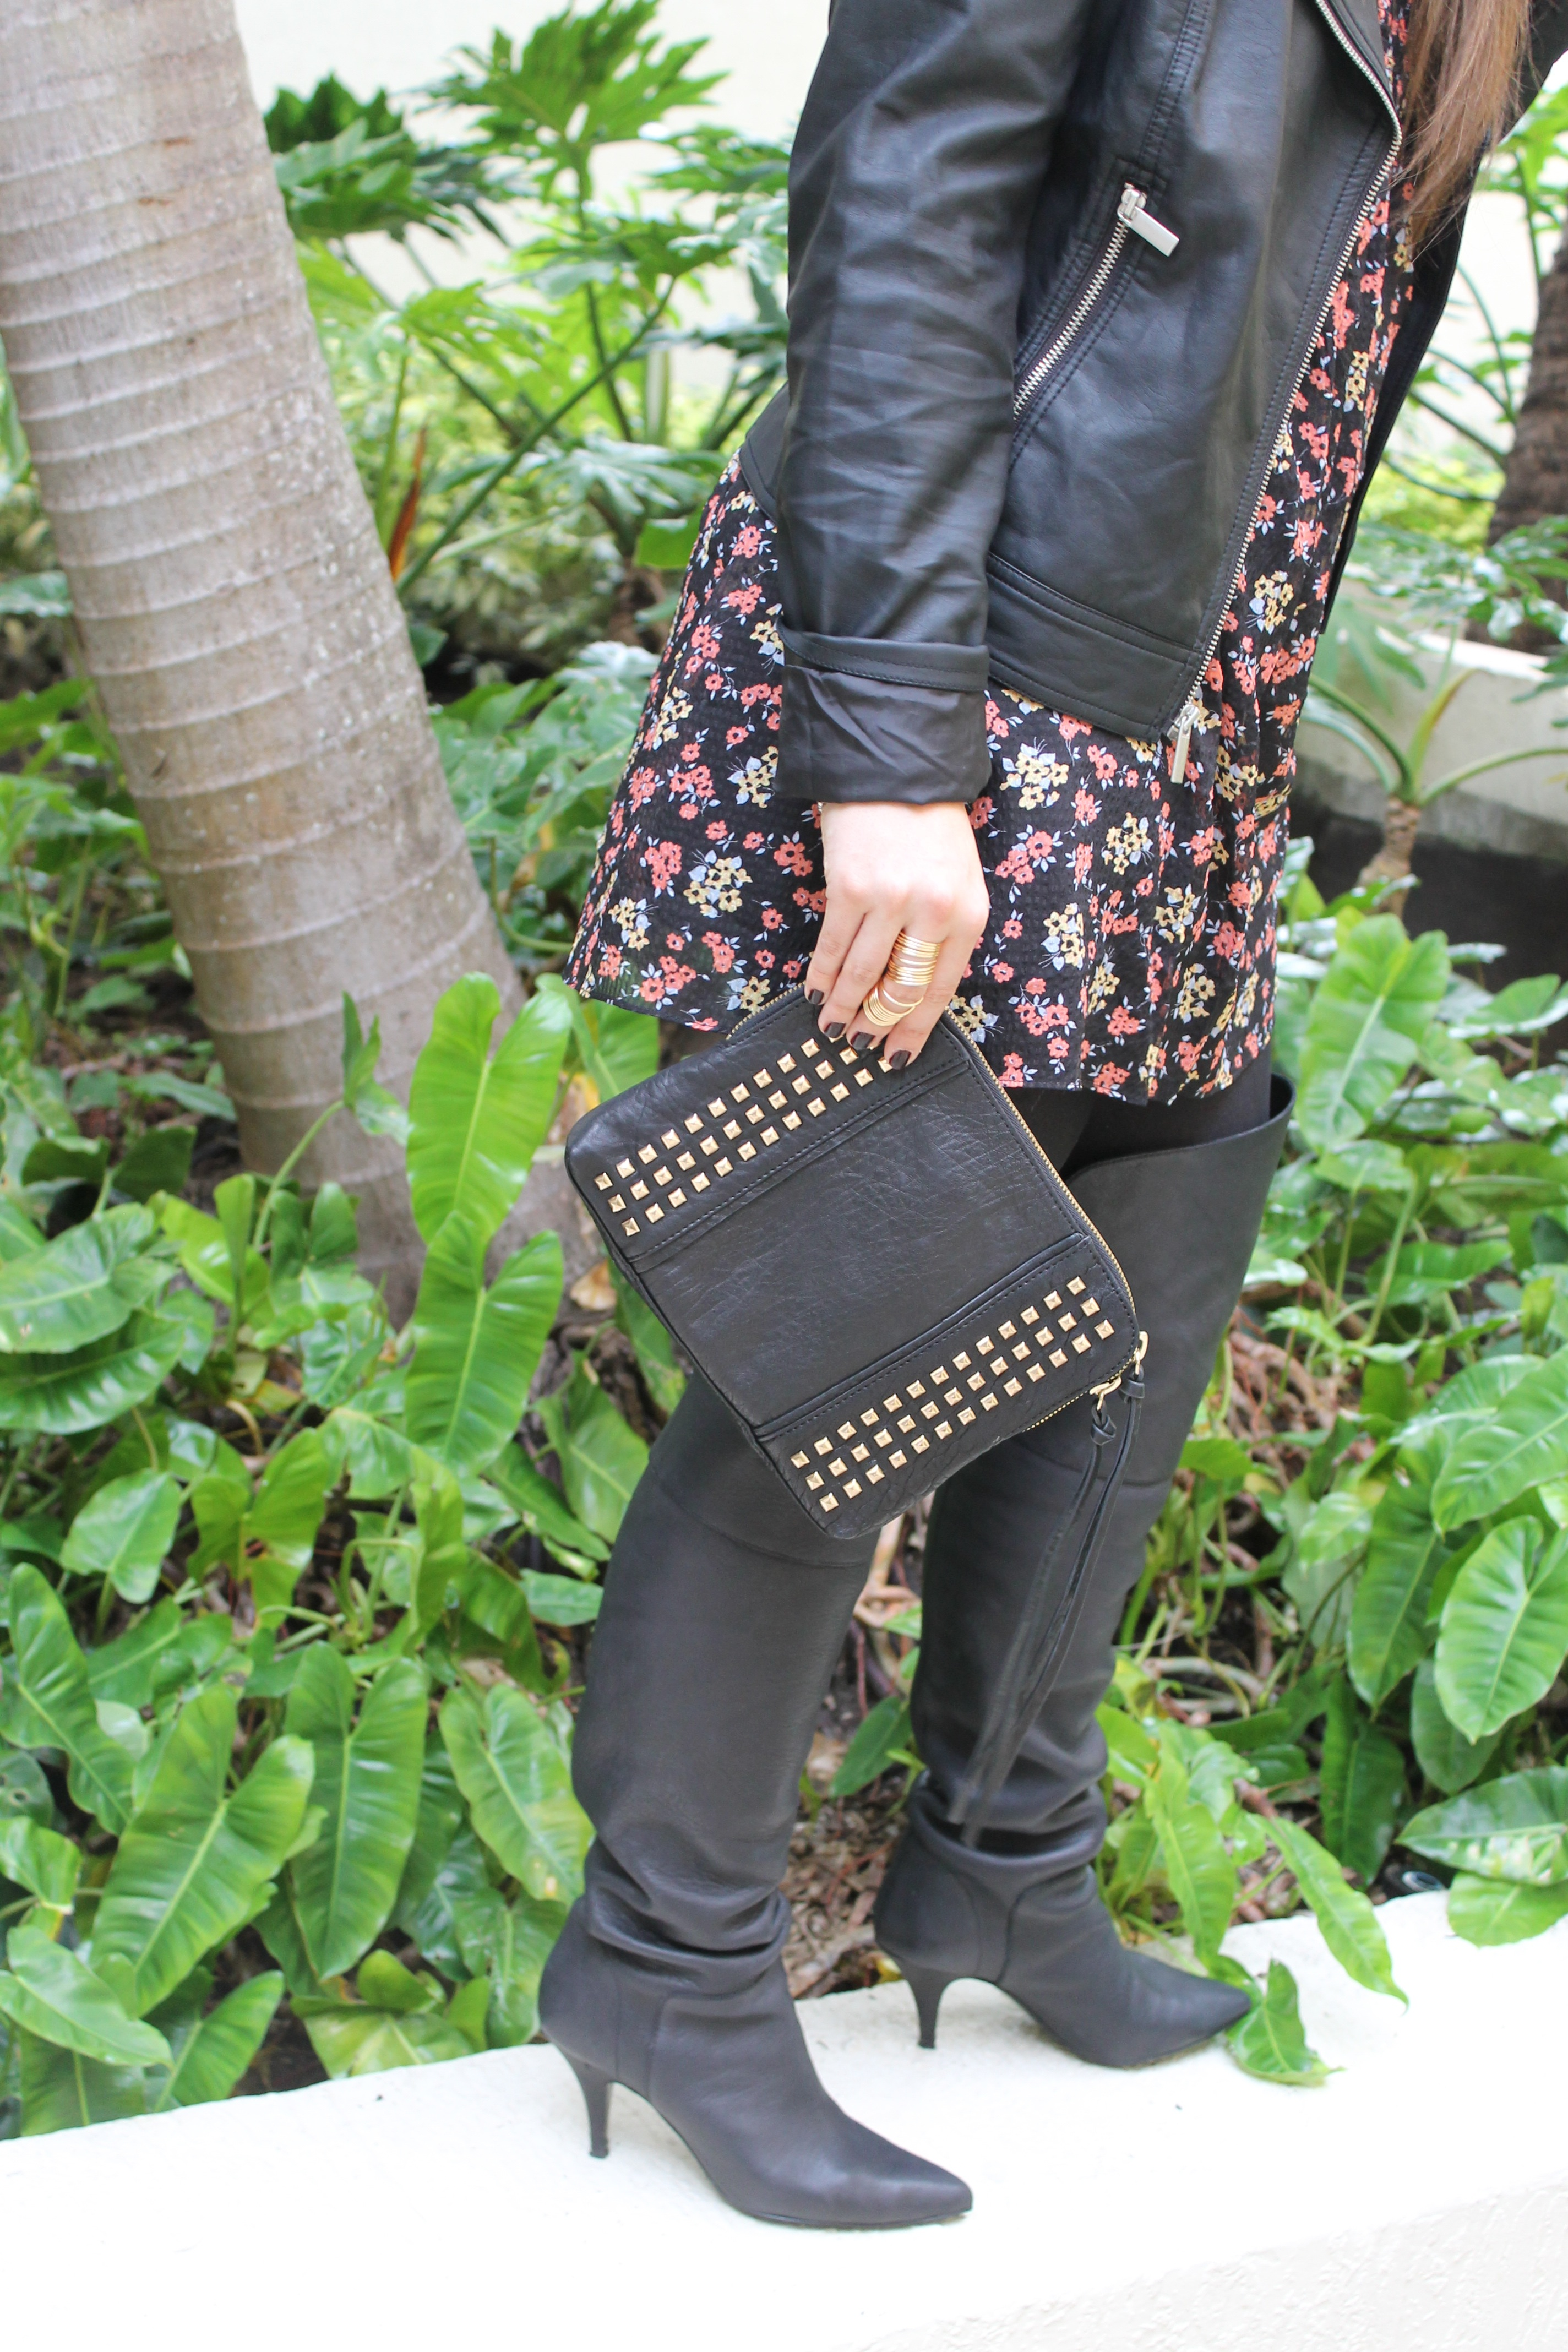 t.j.maxx maxxinista outfit leather jacket free people tunic dress studded clutch gold rings over-the-knee black boots fall _ glitterinc.com